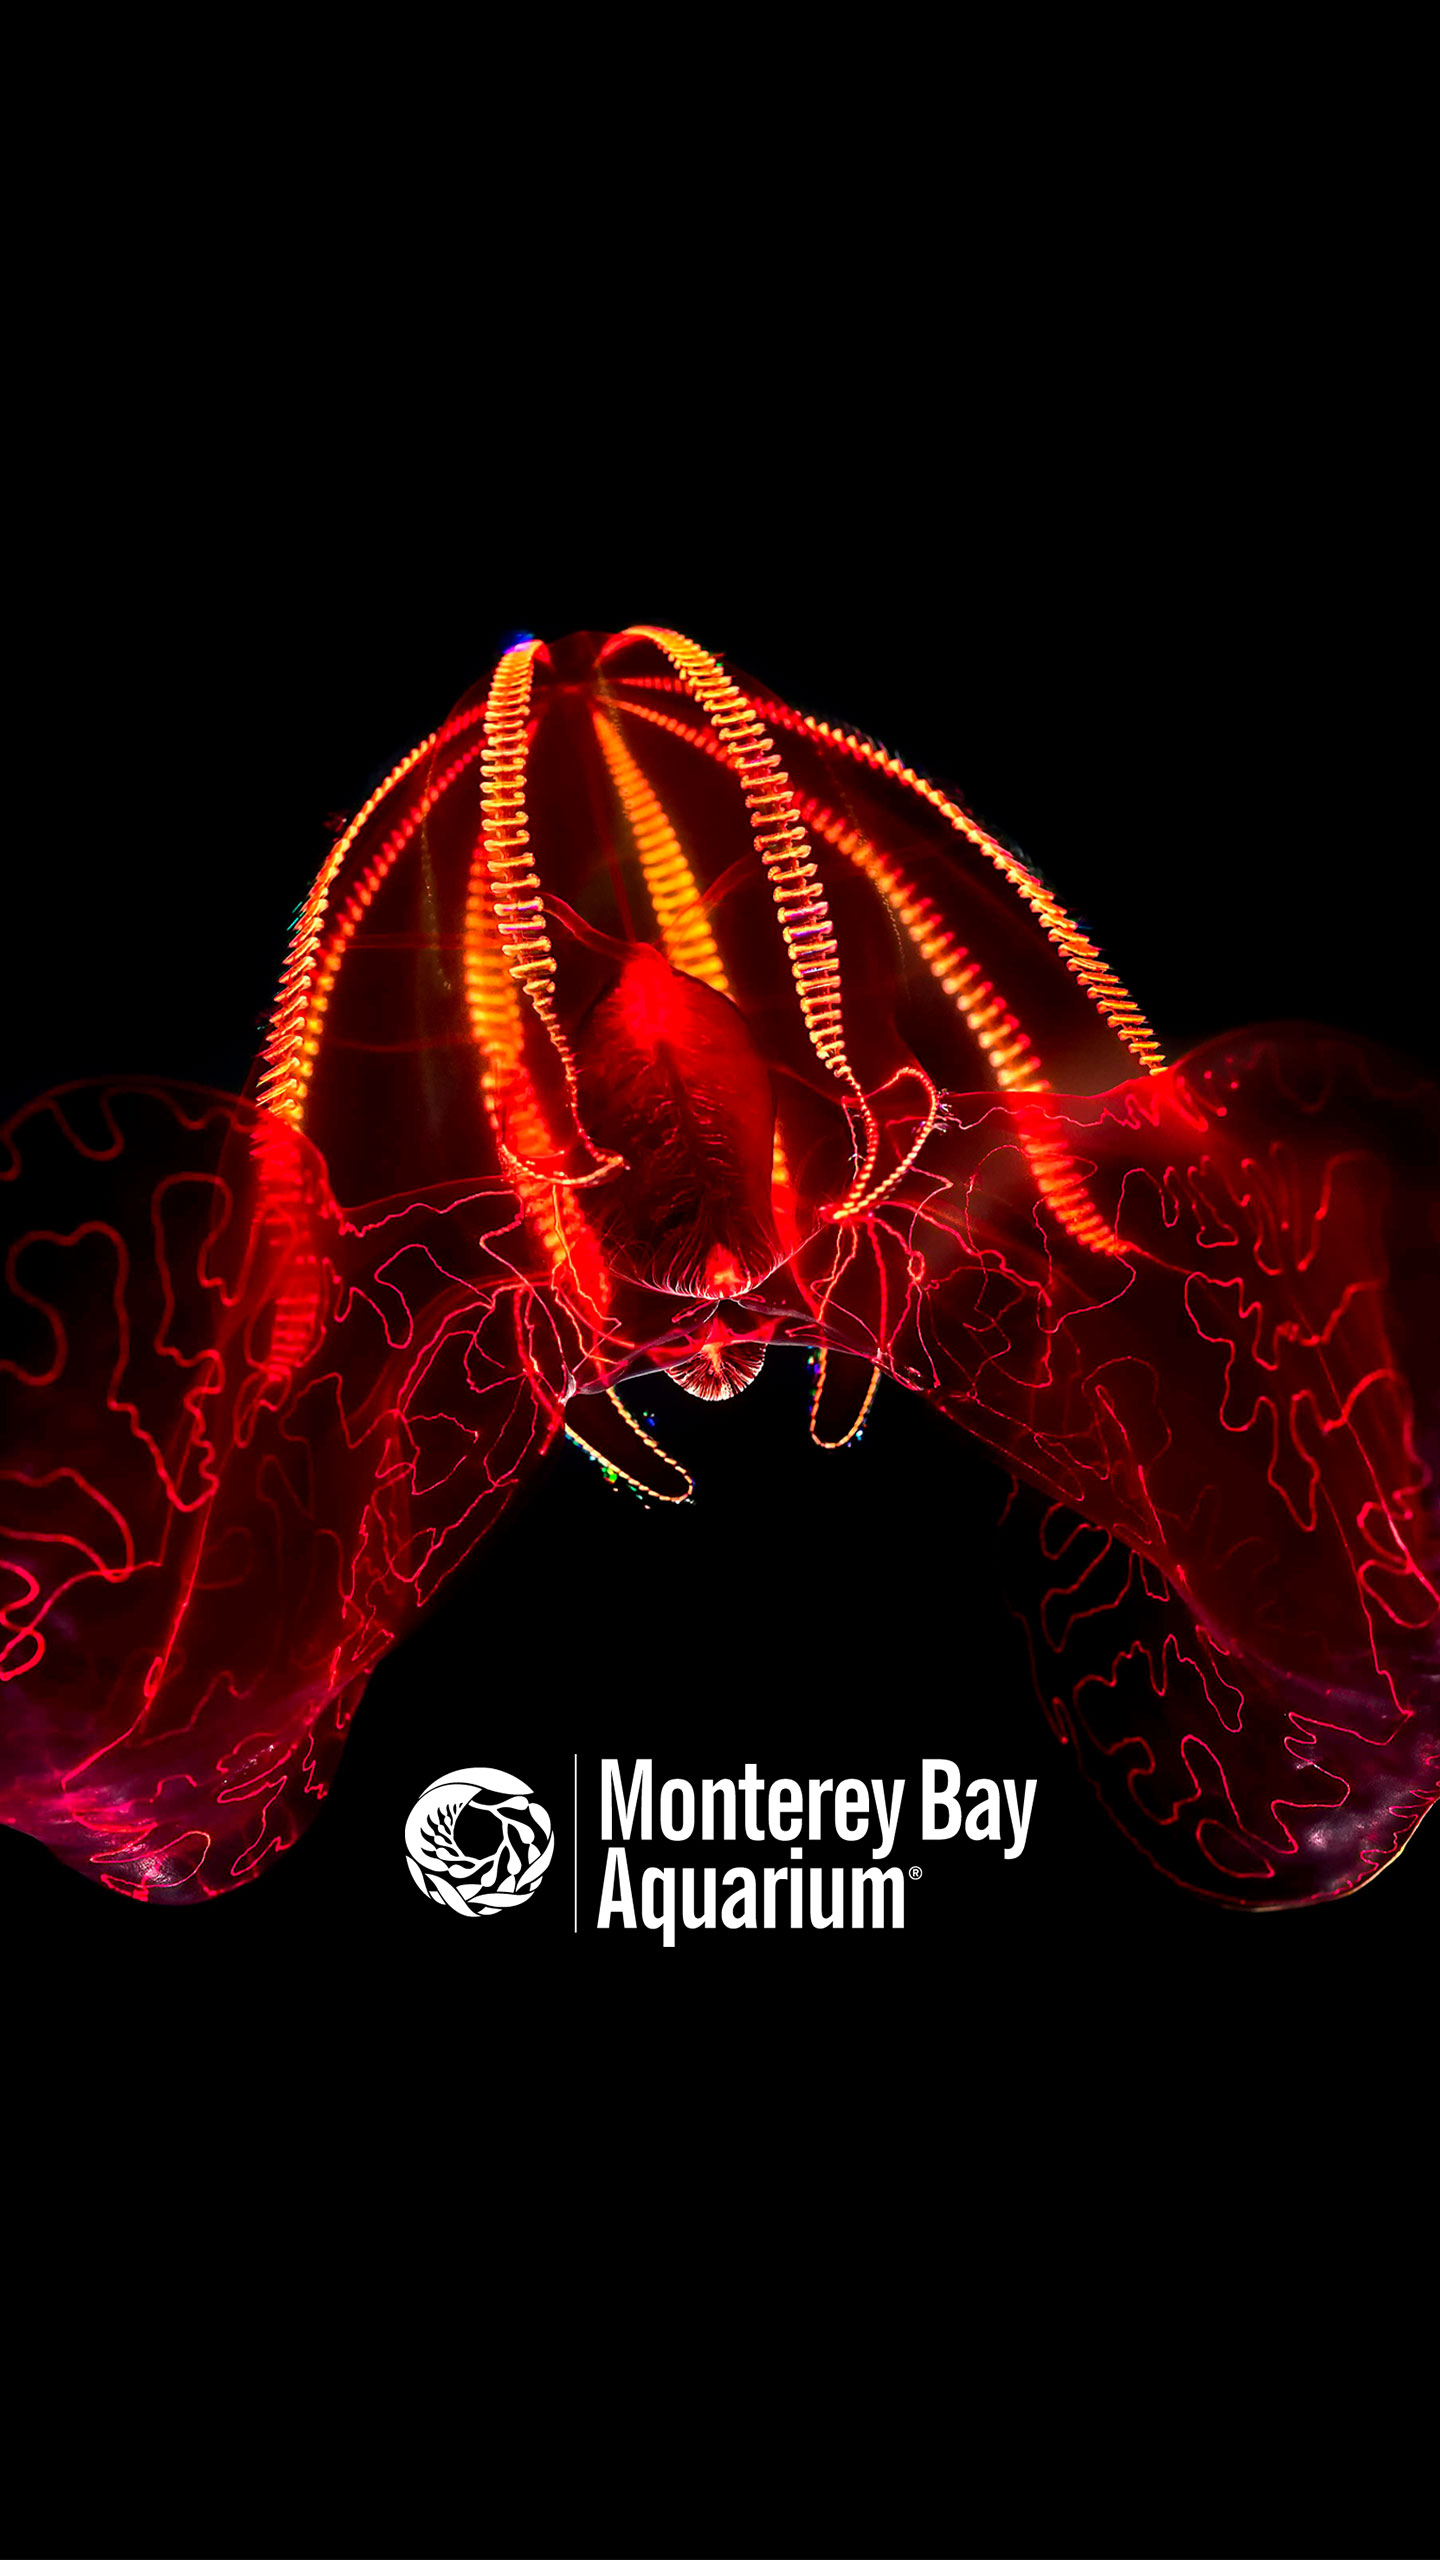 Bloodybelly Comb Jelly Wallpapers Monterey Bay Aquarium